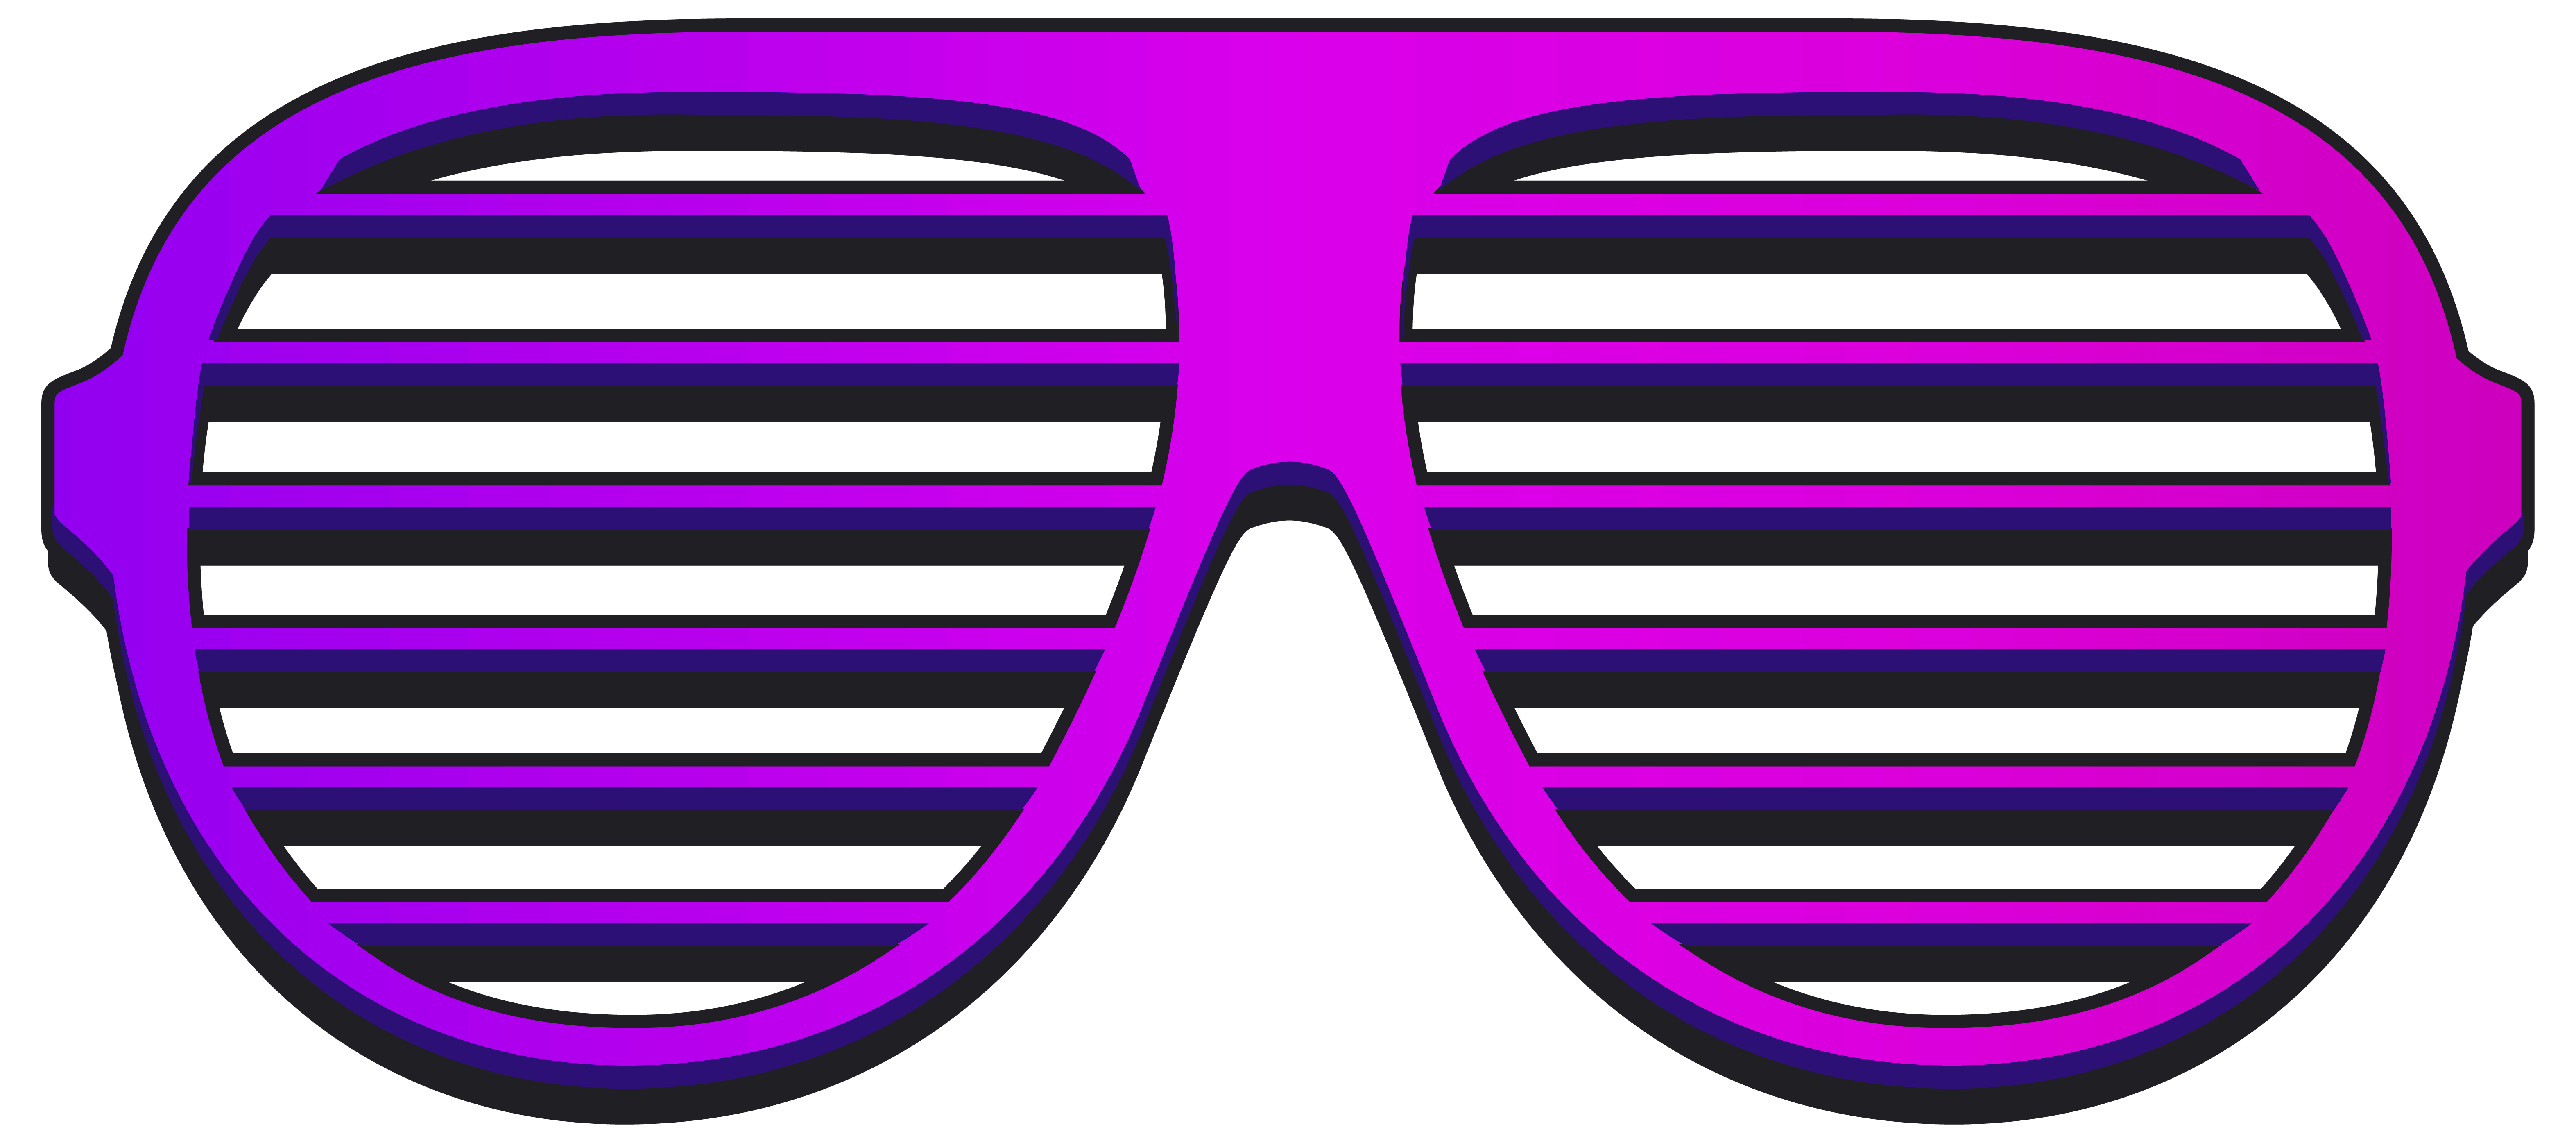 png royalty free Shutter shades png image. Cool clipart